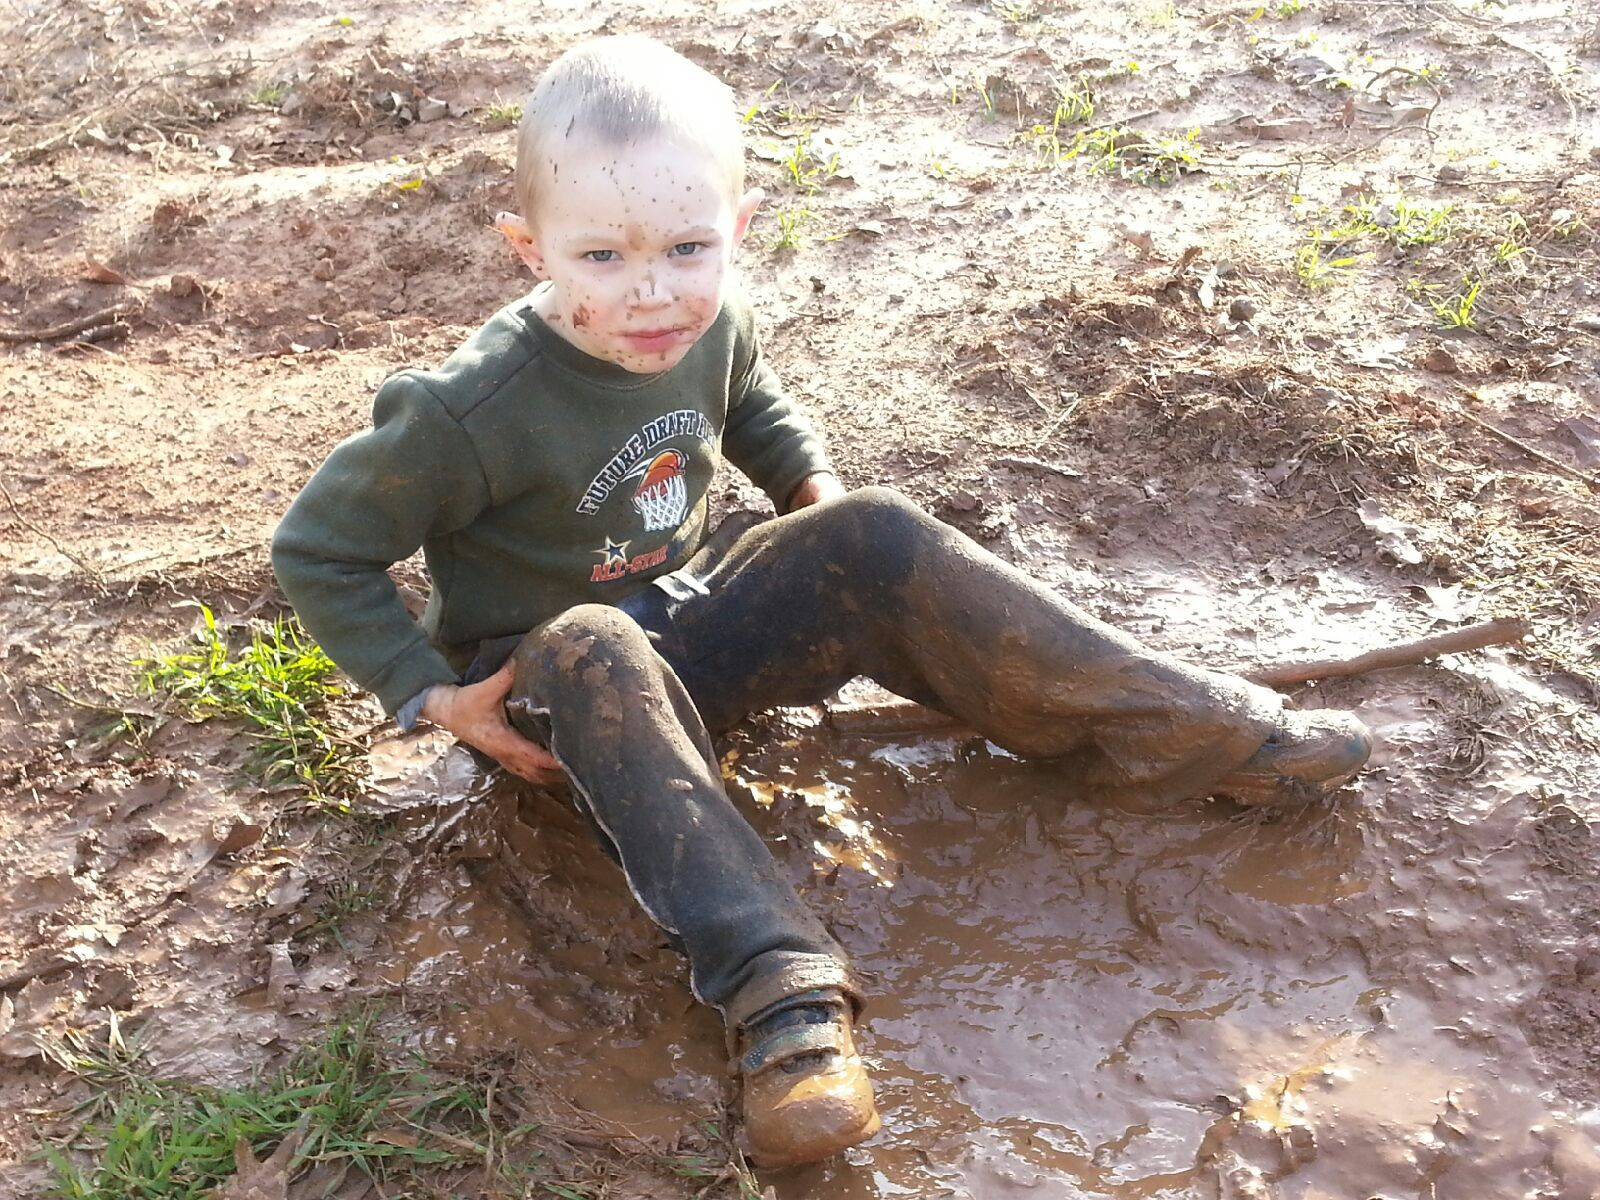 Ezra in mud.jpeg